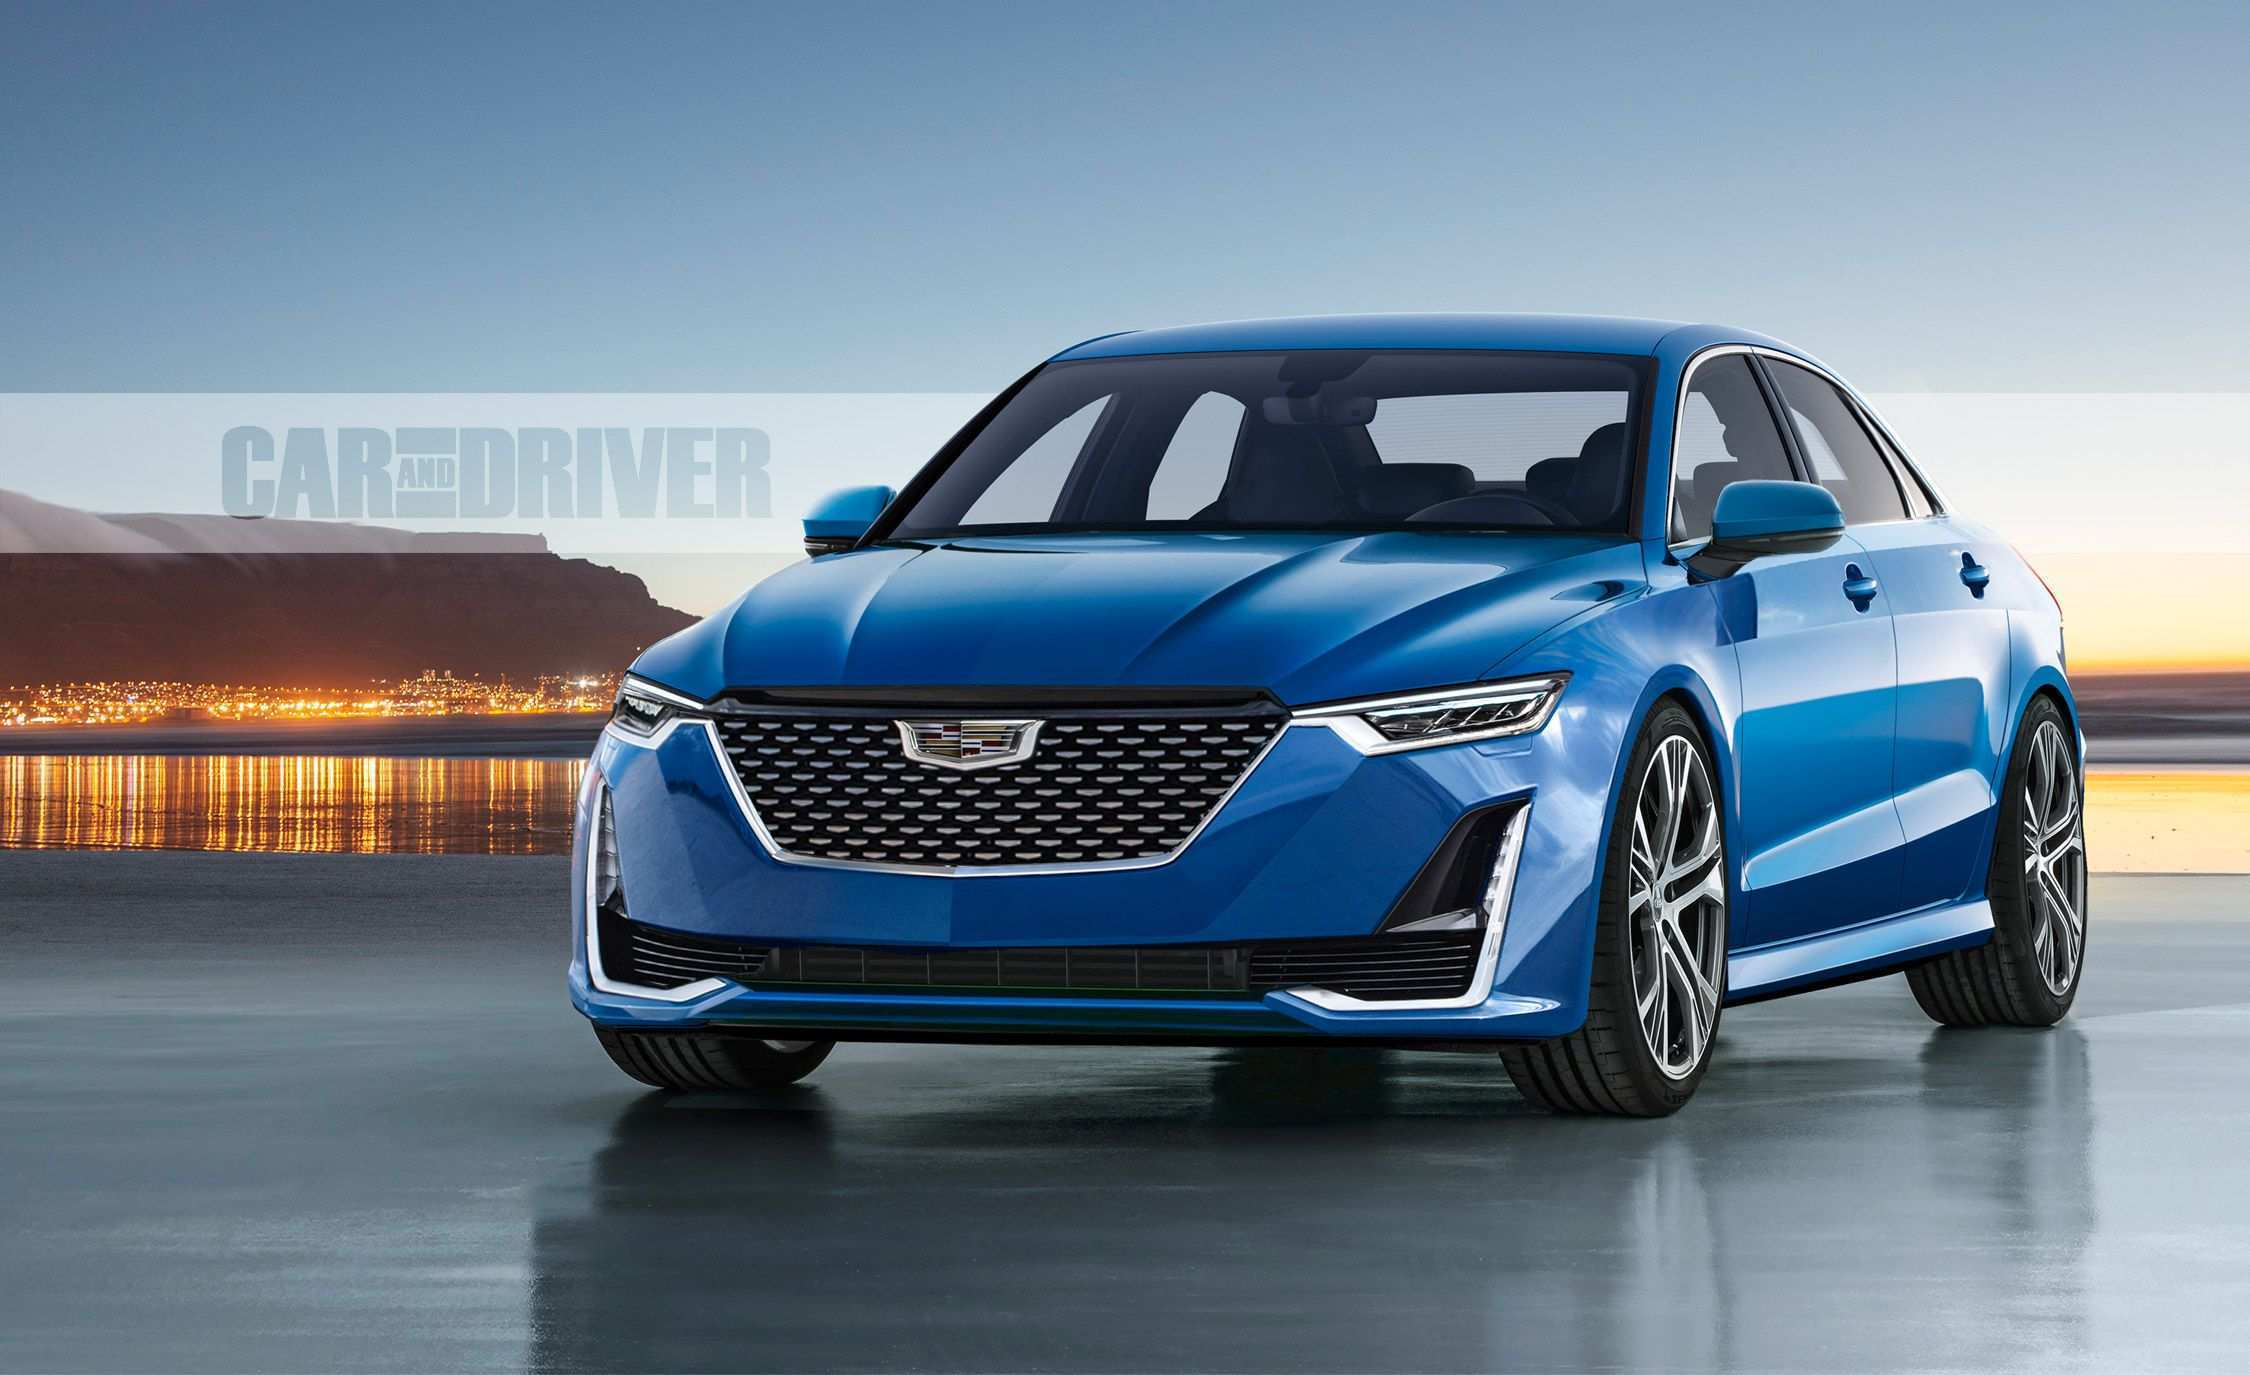 75 New 2020 Cadillac Ats Engine with 2020 Cadillac Ats